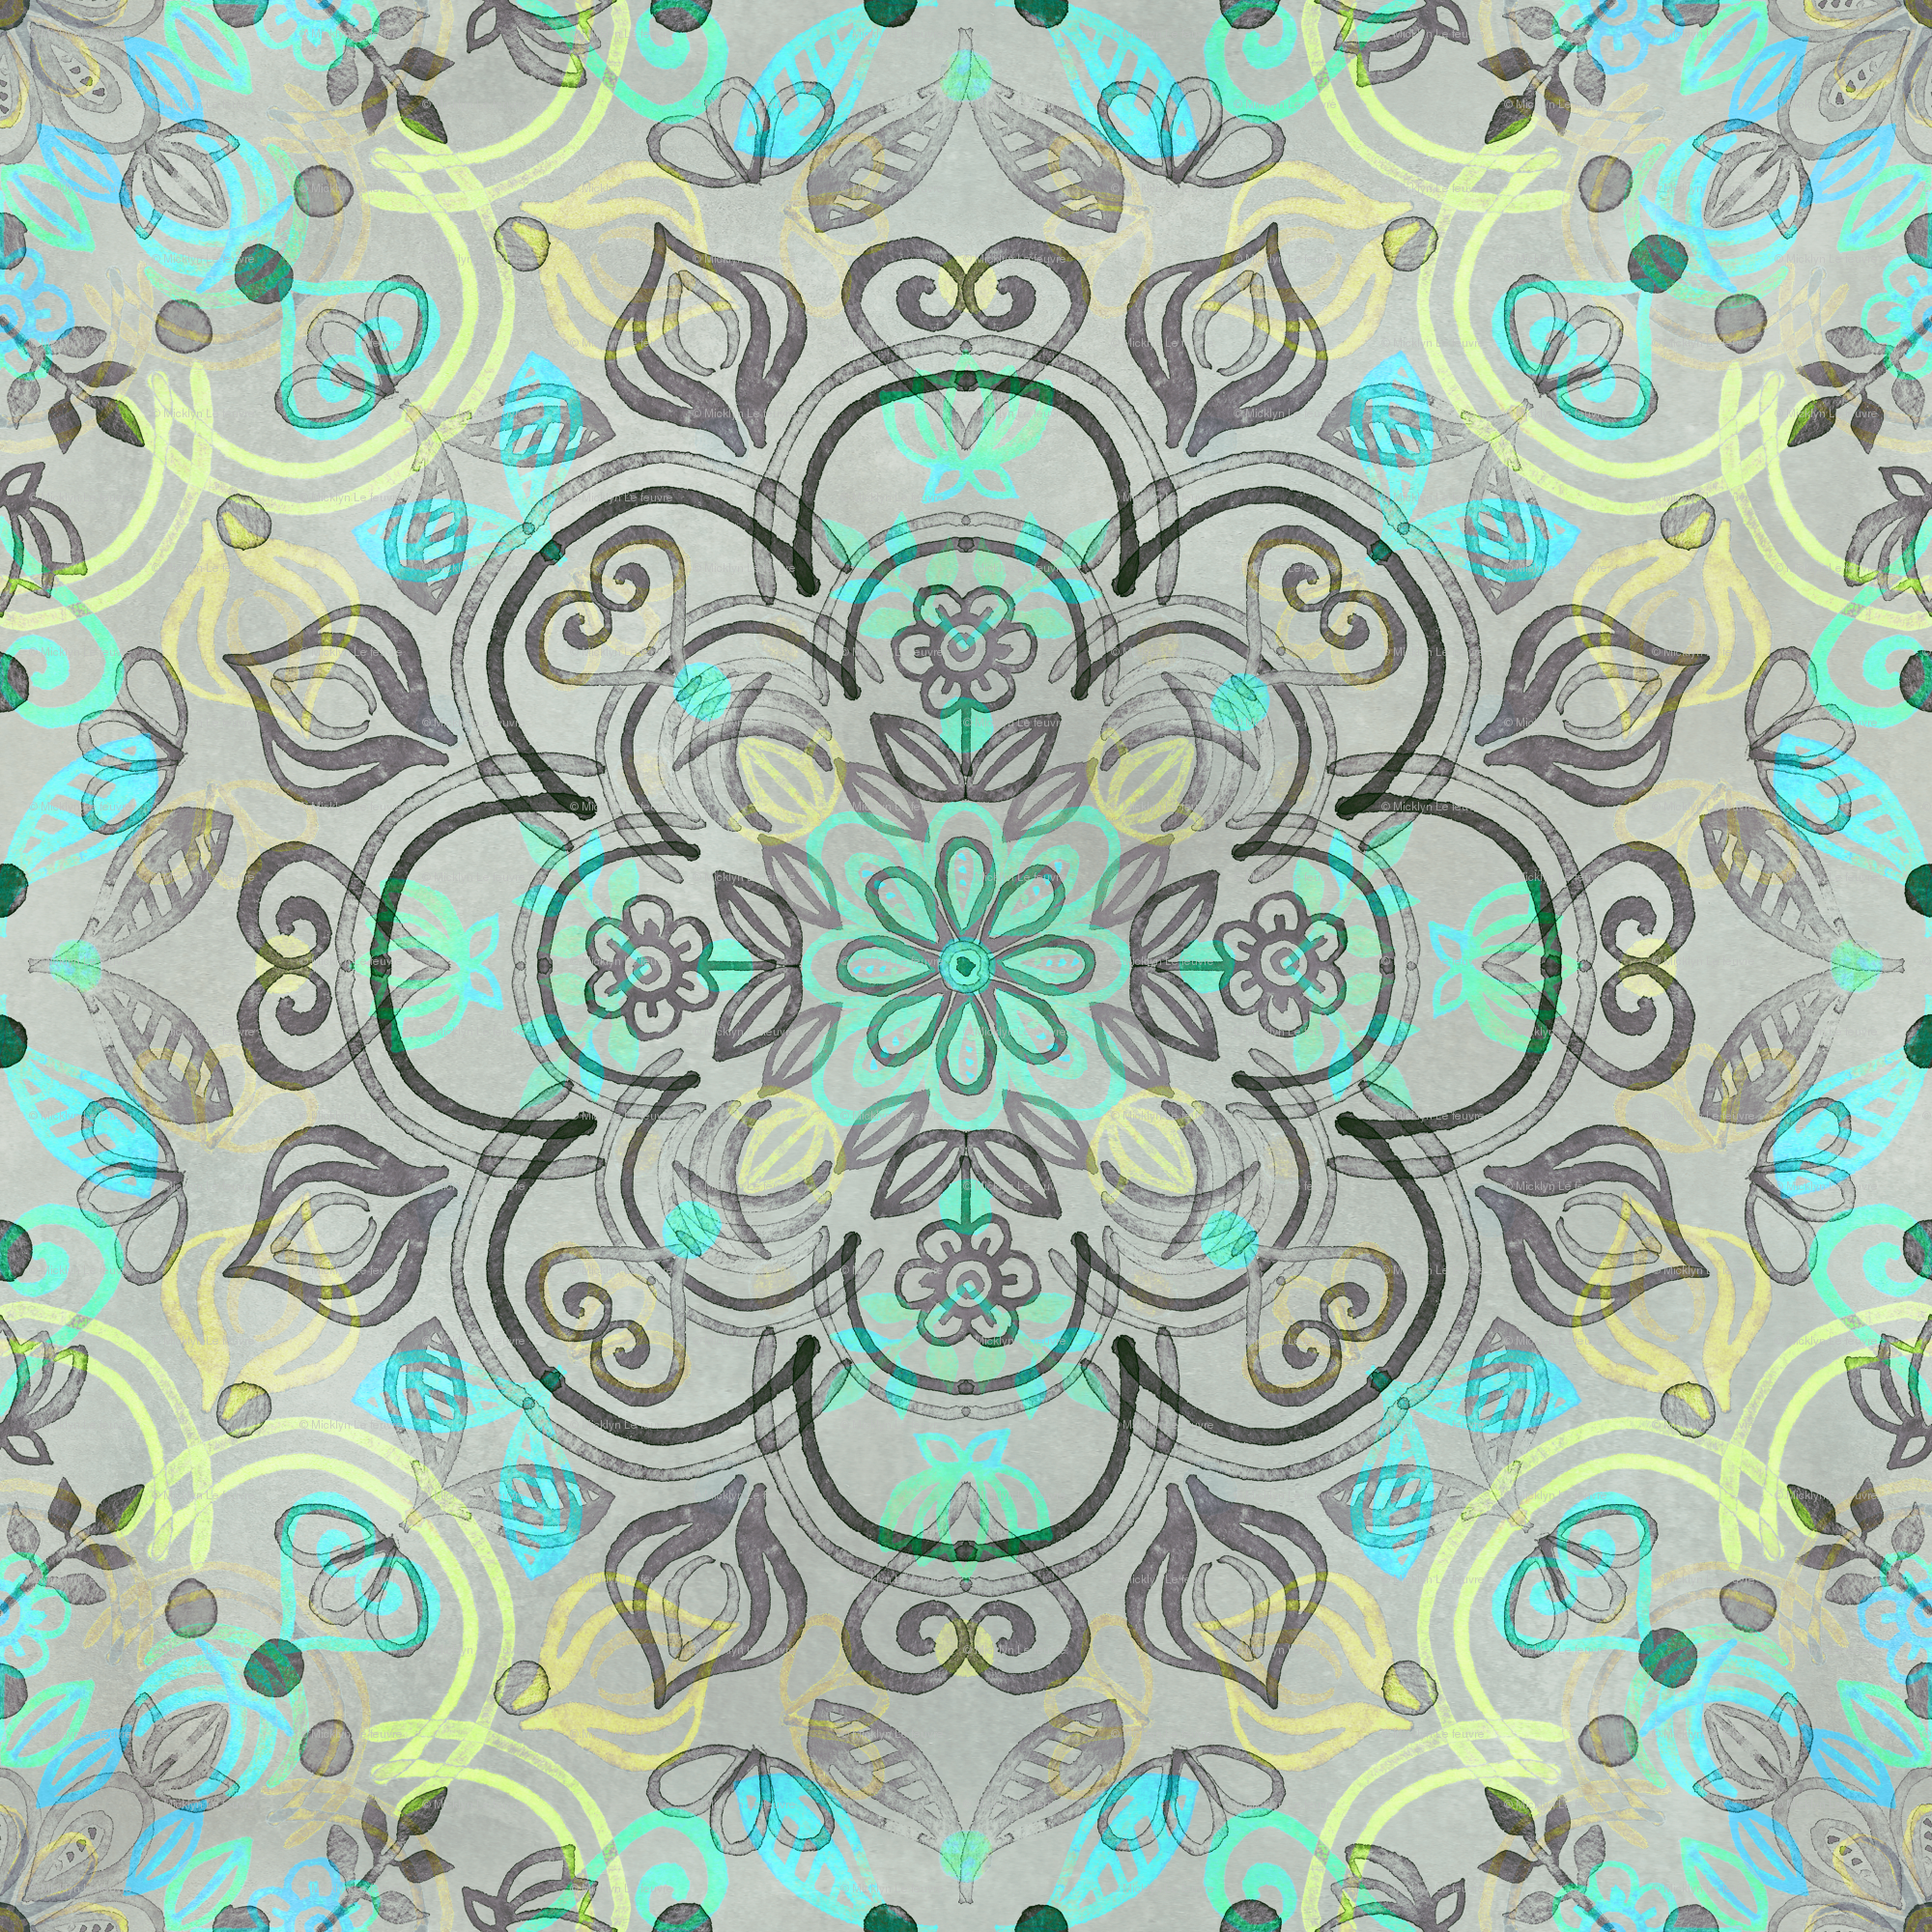 Beautiful Wallpaper Grey Watercolor - rrmint_yellow_grey_watercolor_folk_pattern_base_highres  Photograph_7862100.png